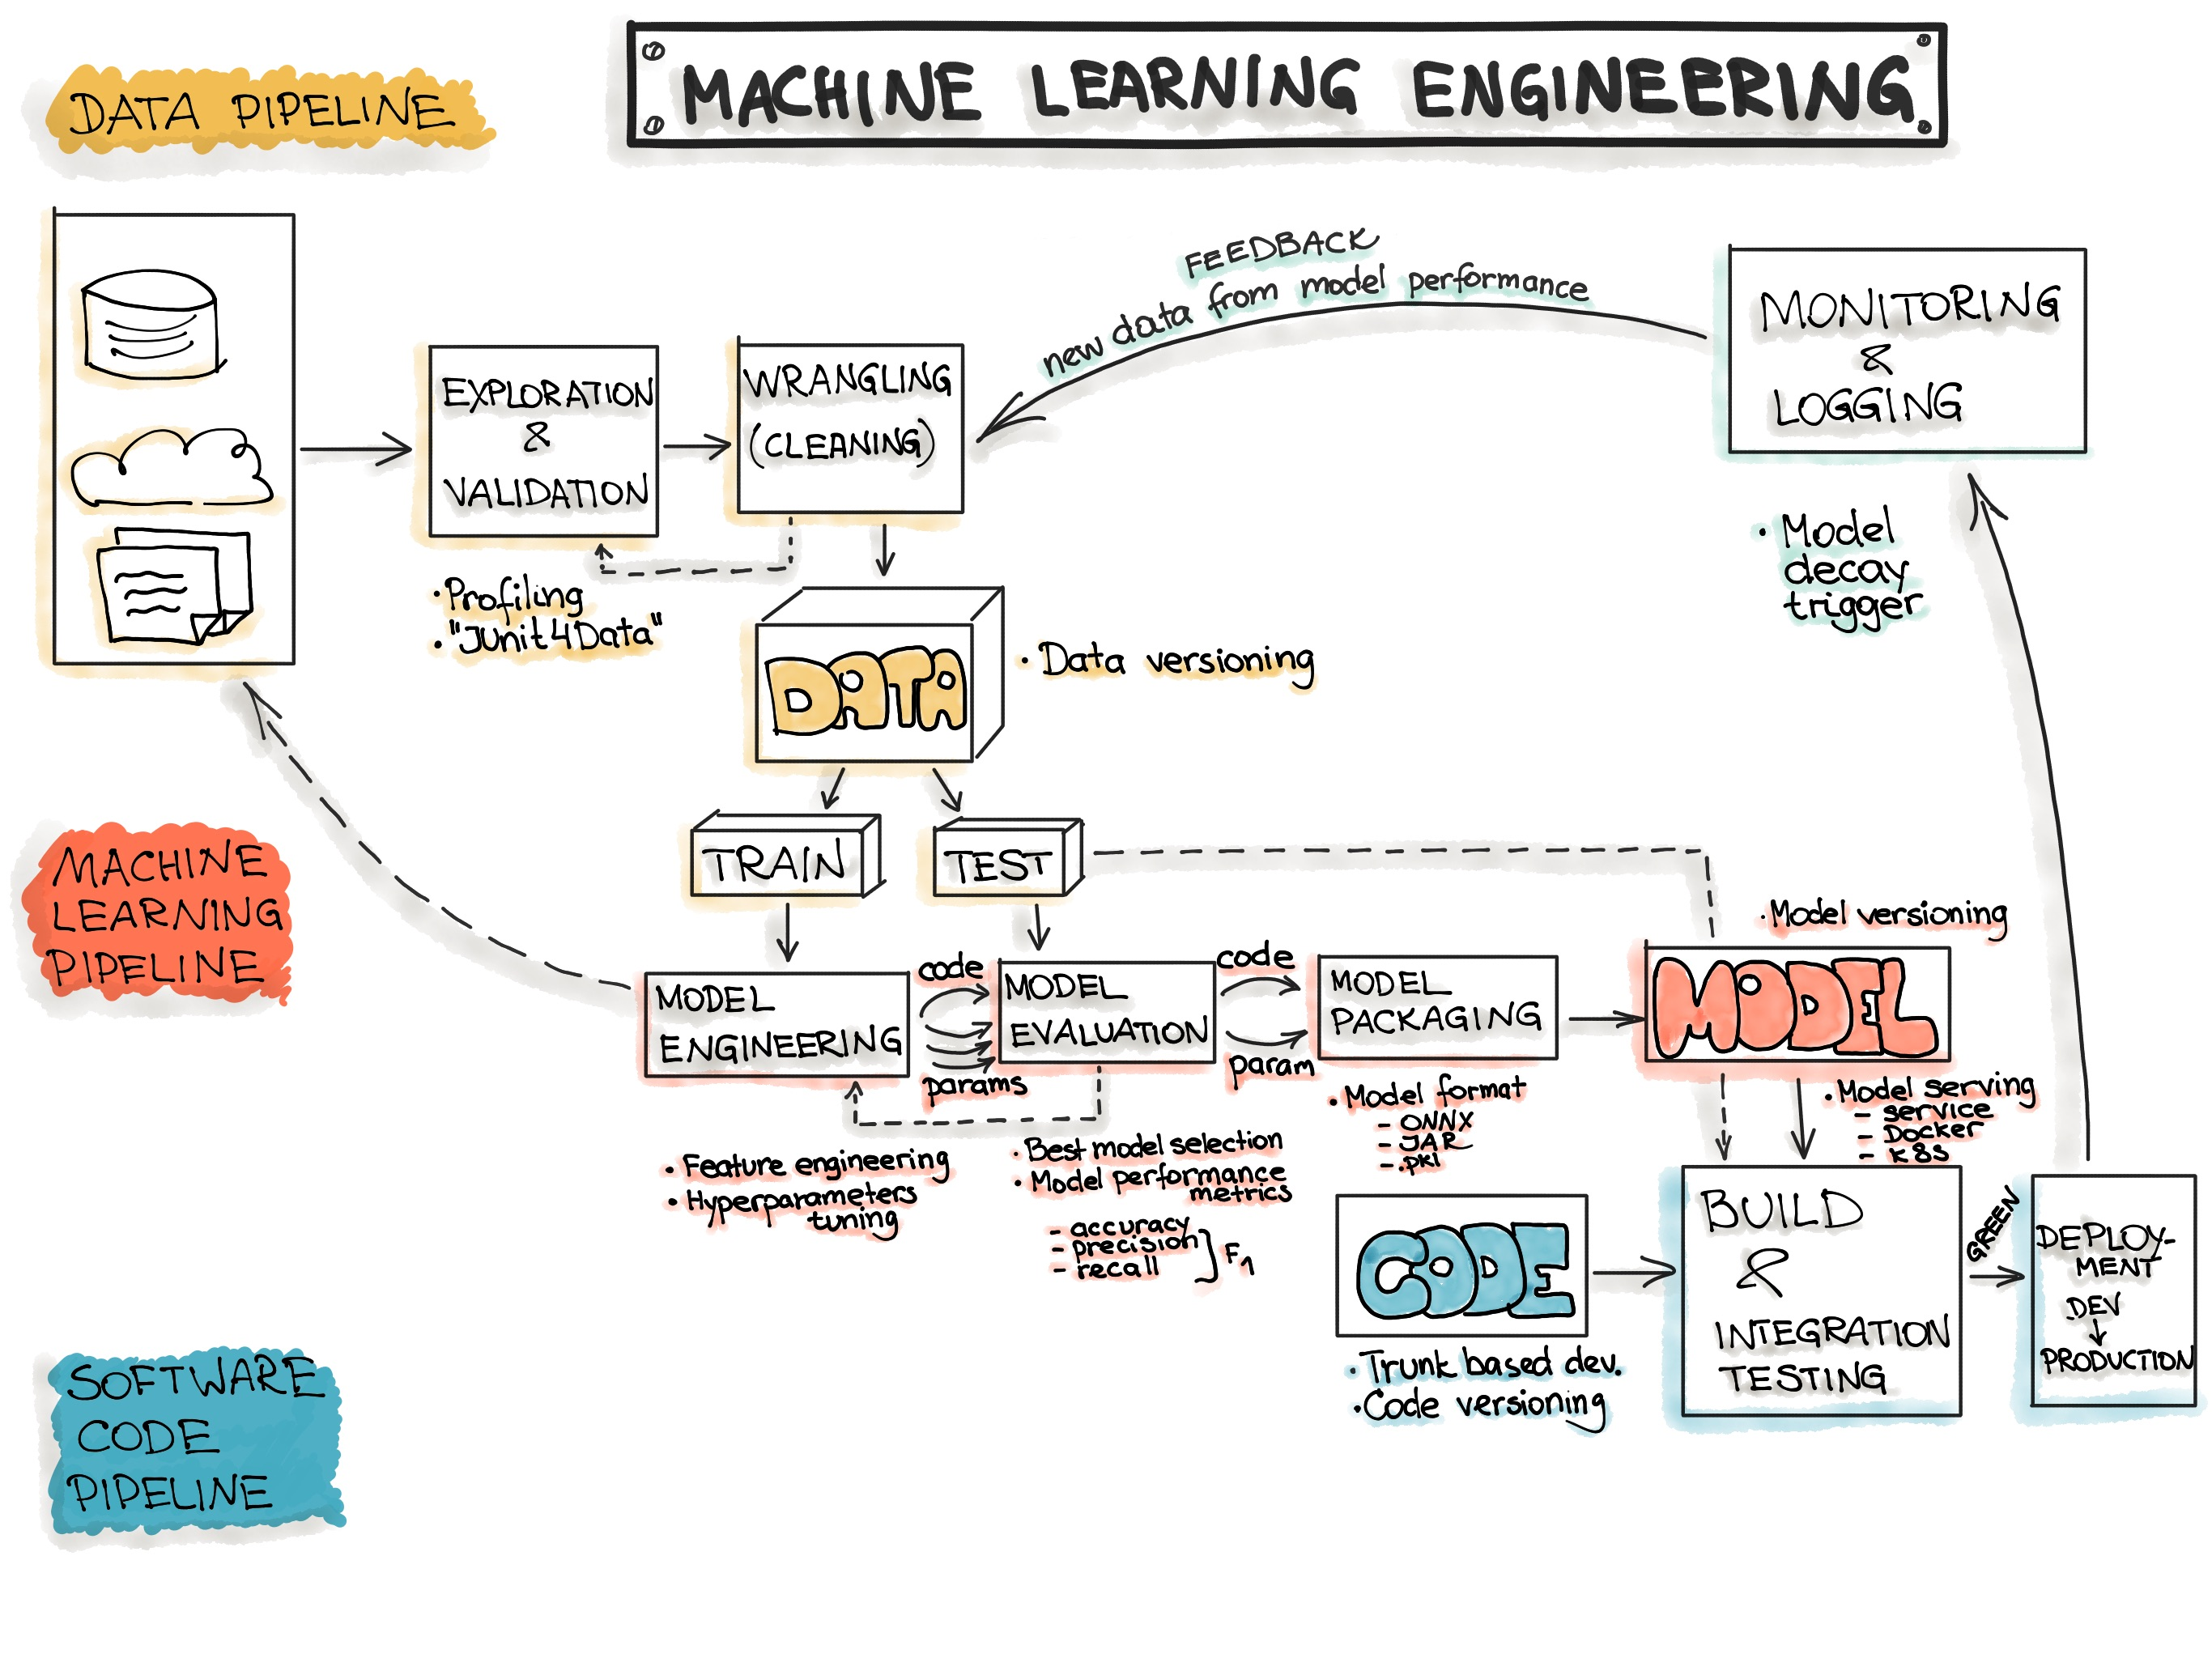 Machine Learning Engineering